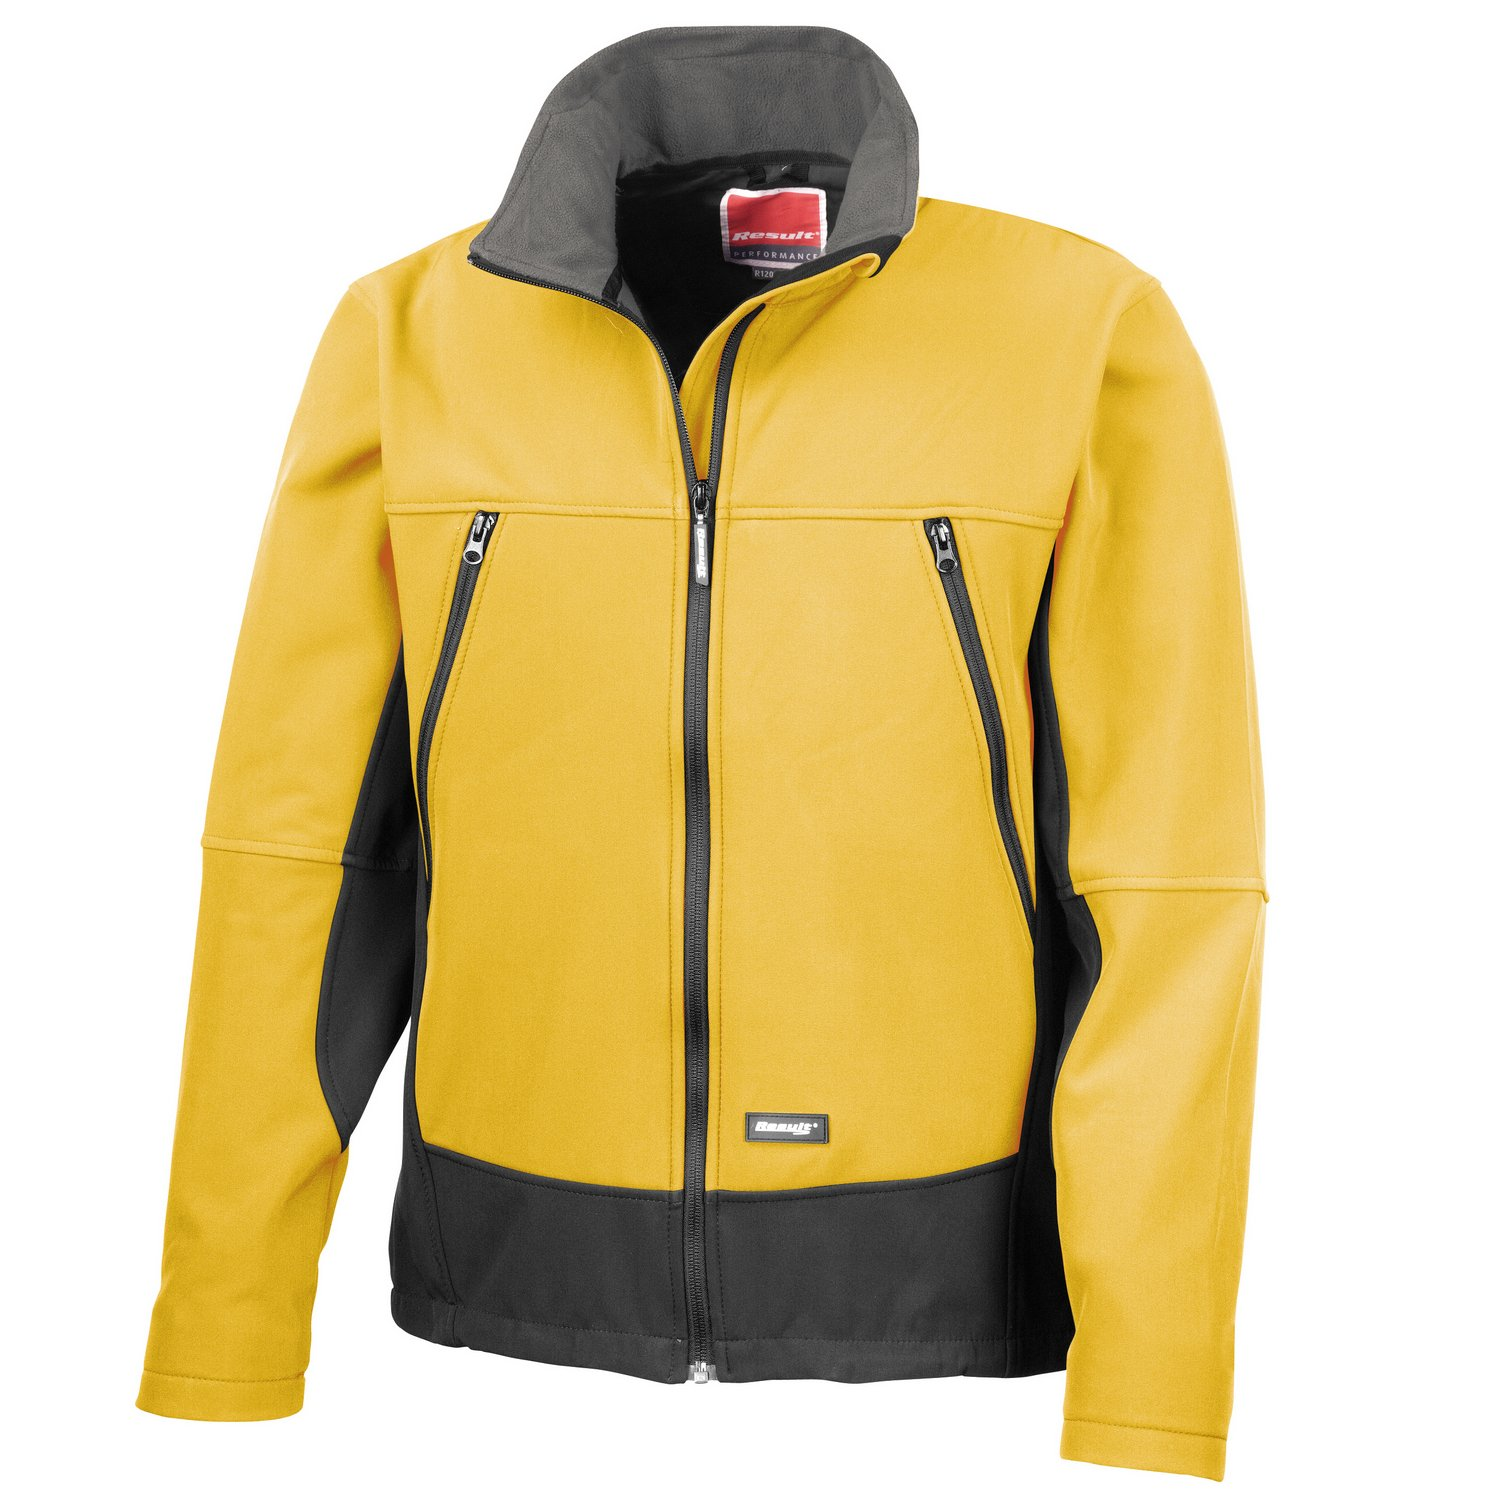 Result Softshell activity jacket Sport Yellow/ Black* 2XL